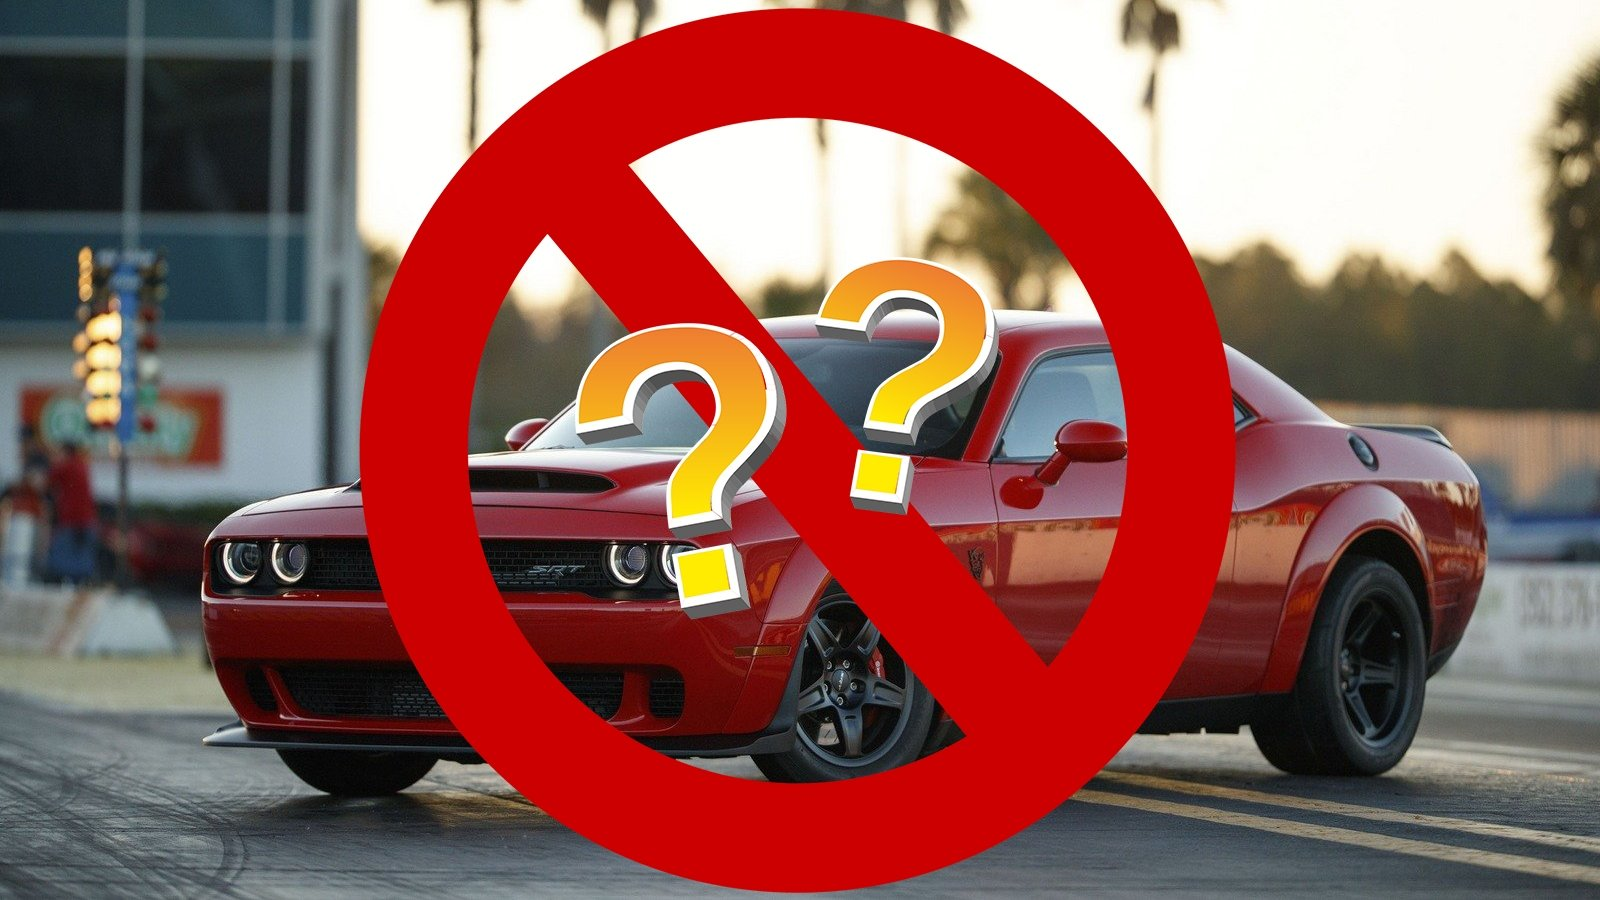 should the dodge demon be banned from public roads picture top speed. Black Bedroom Furniture Sets. Home Design Ideas